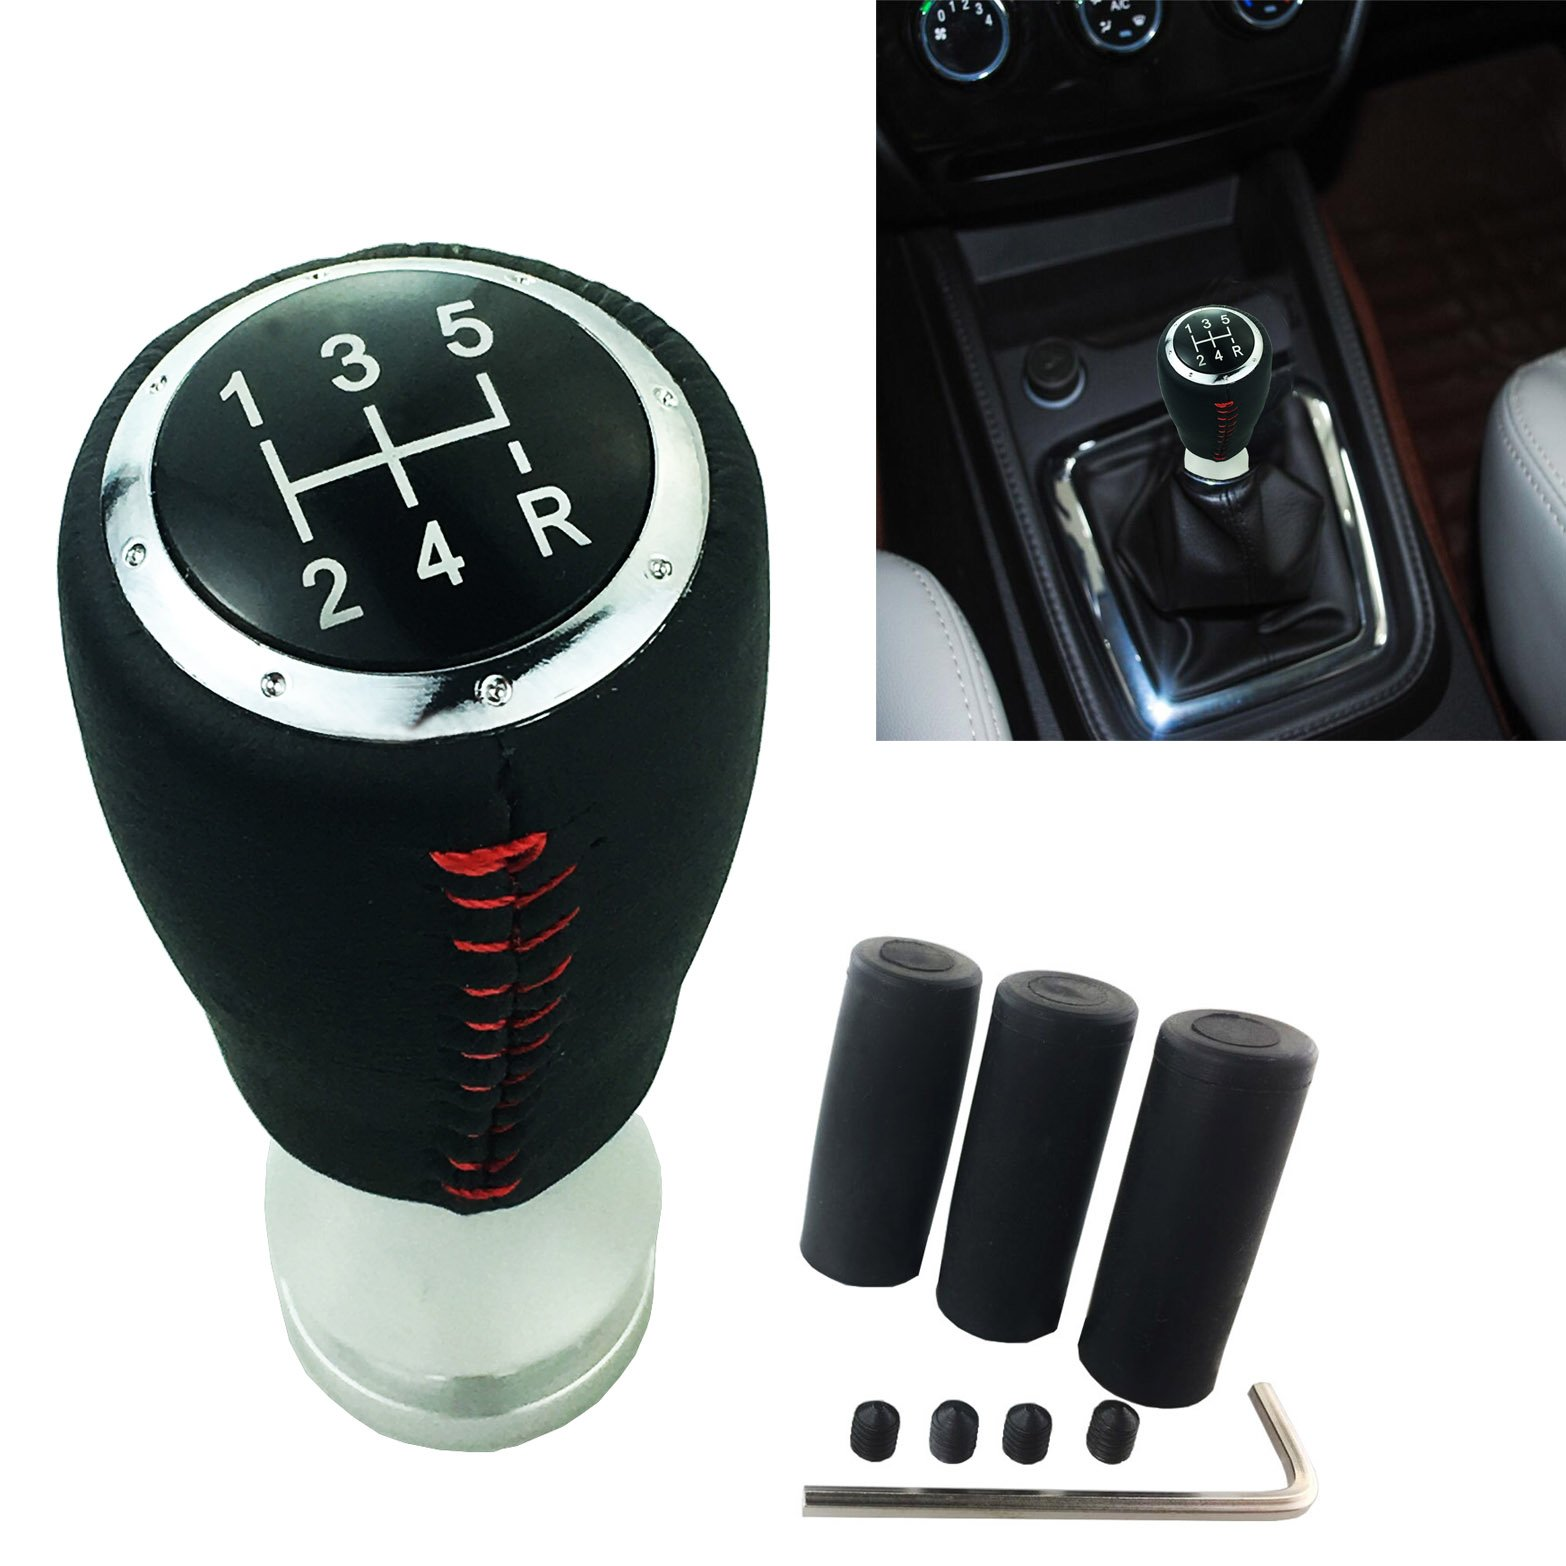 Arenbel New Universal 5 Speed Red Leather Manual and Automatic Car Gear Stick Shifter Knob Shift Lever Fit Most Cars